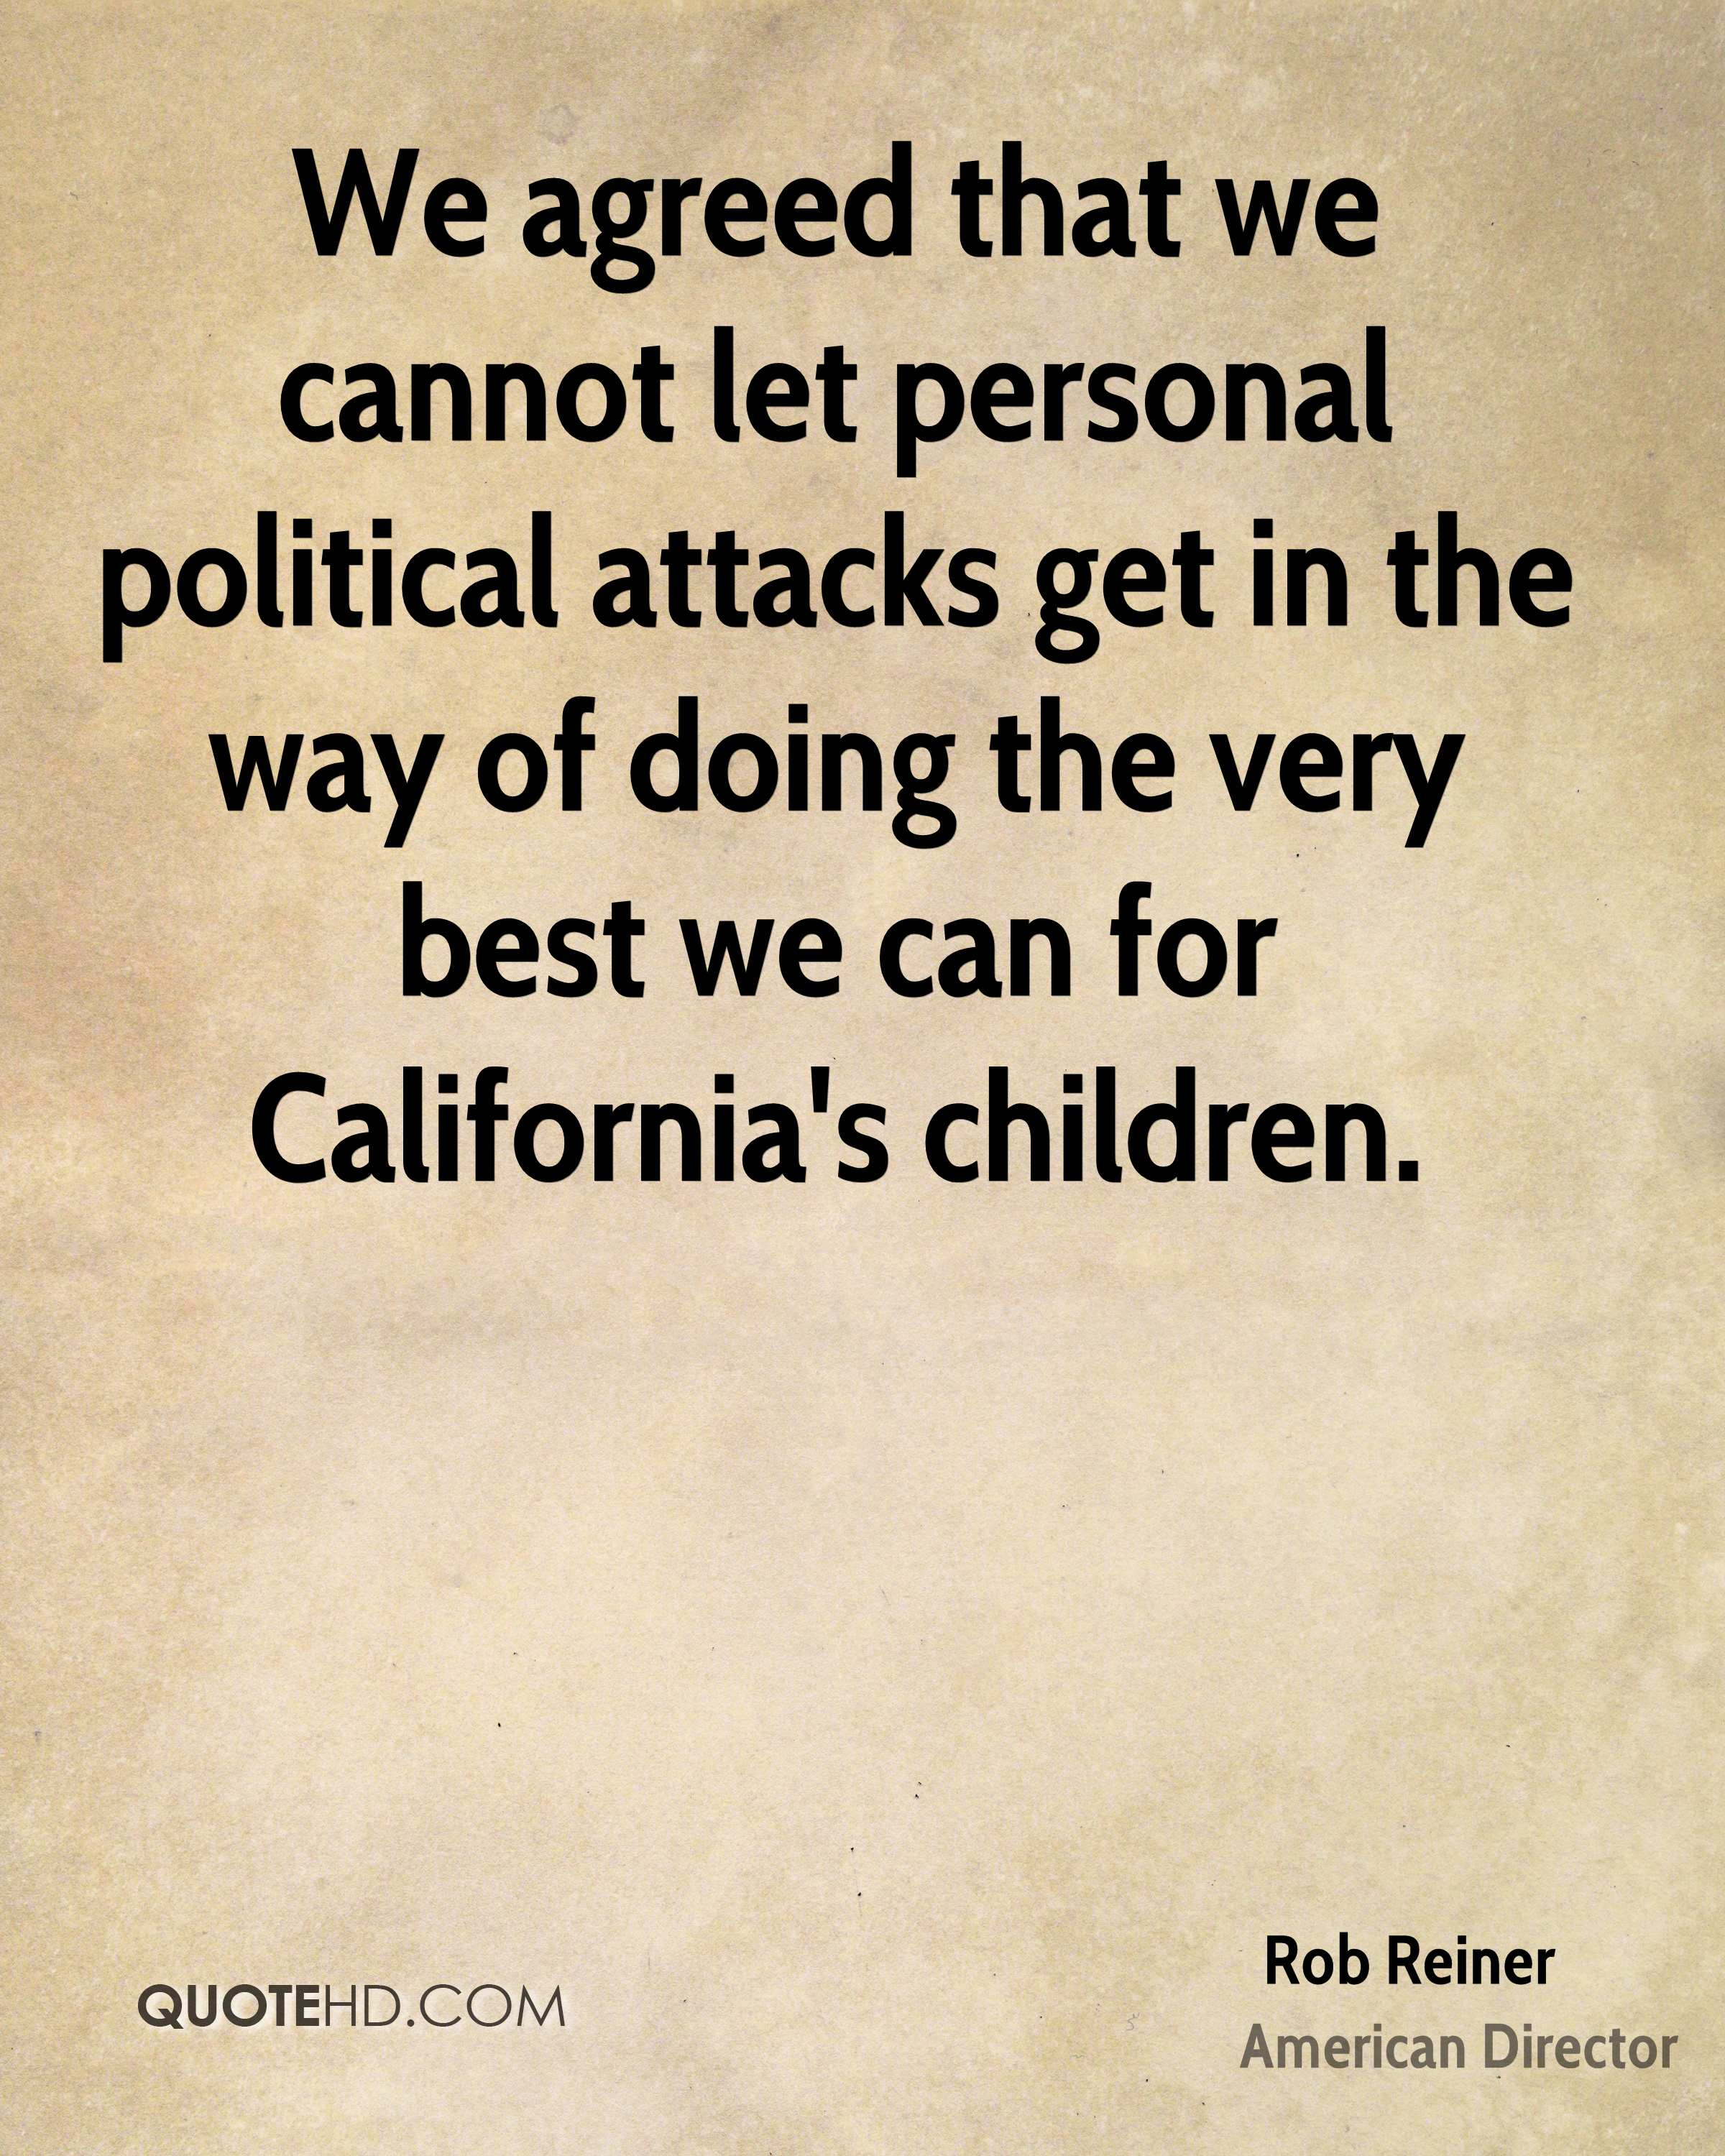 We agreed that we cannot let personal political attacks get in the way of doing the very best we can for California's children.